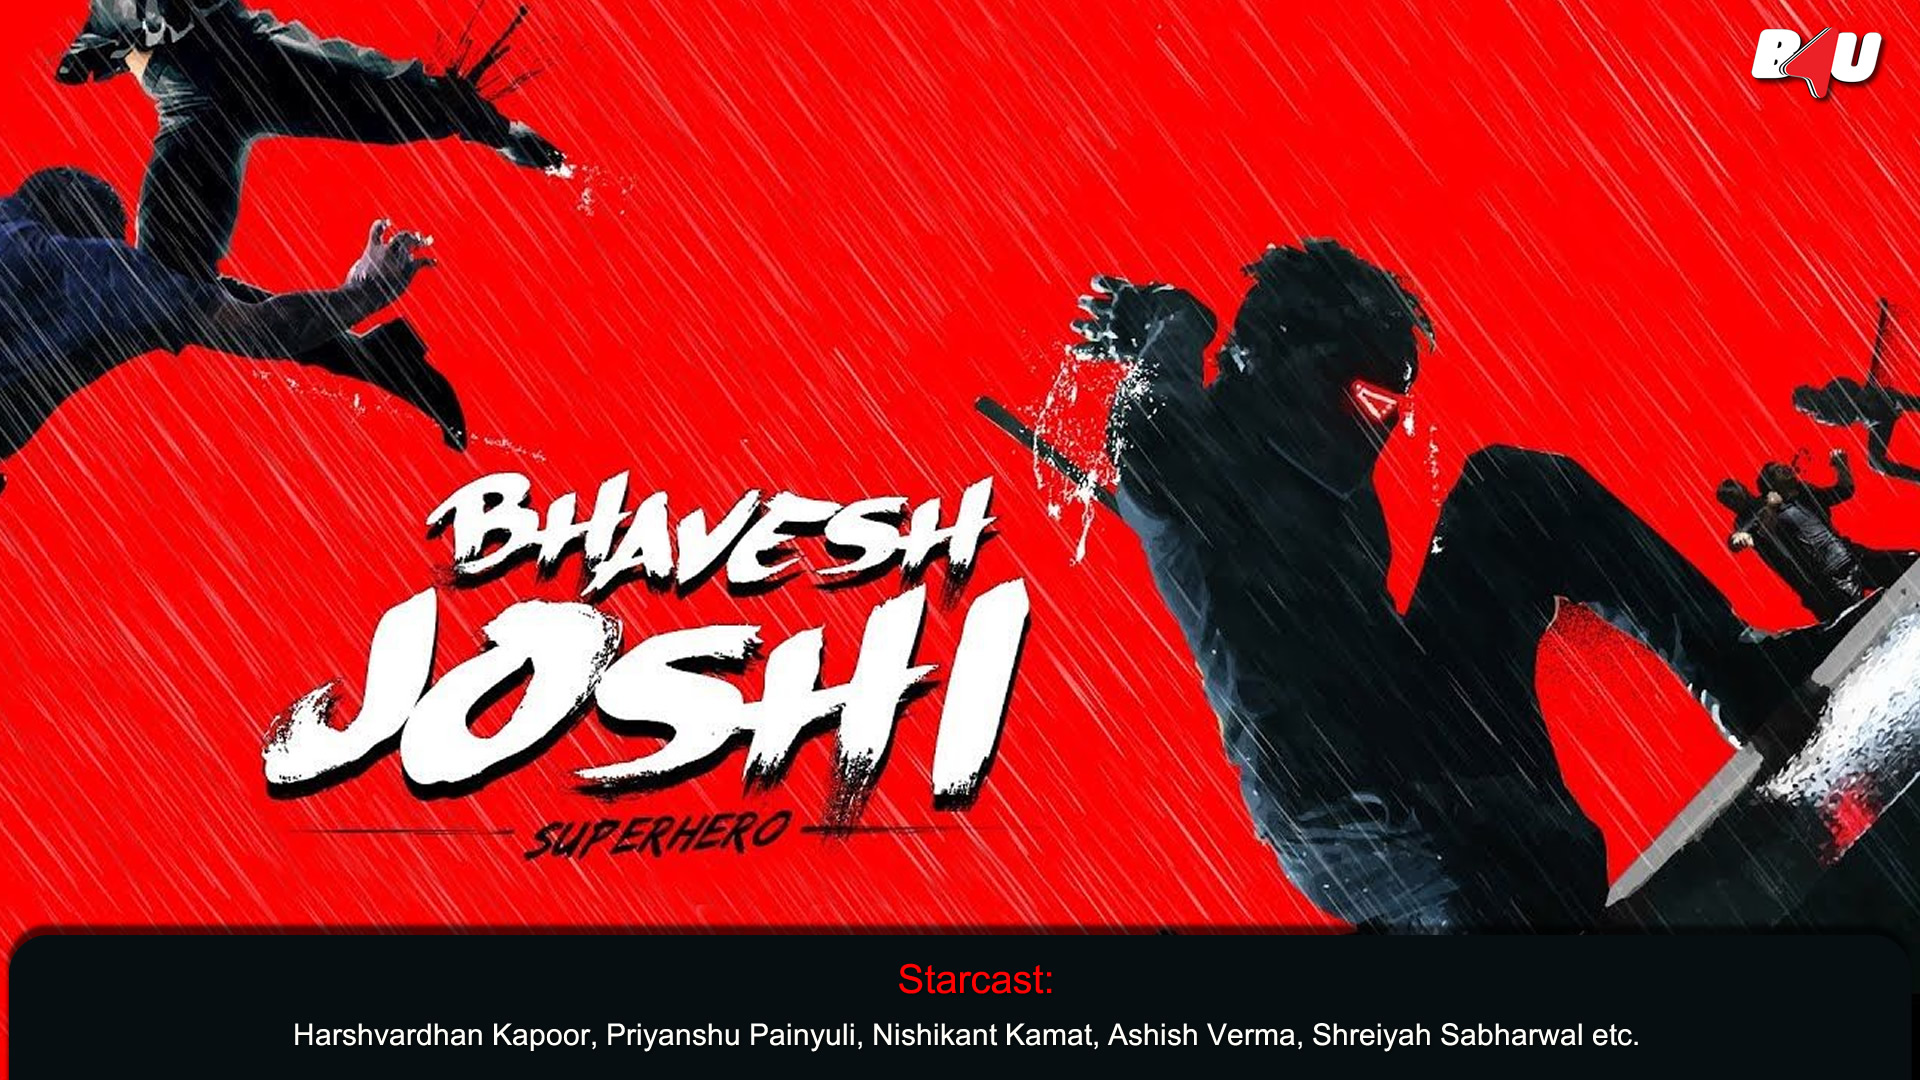 Bhavesh Joshi Superhero Wallpaper